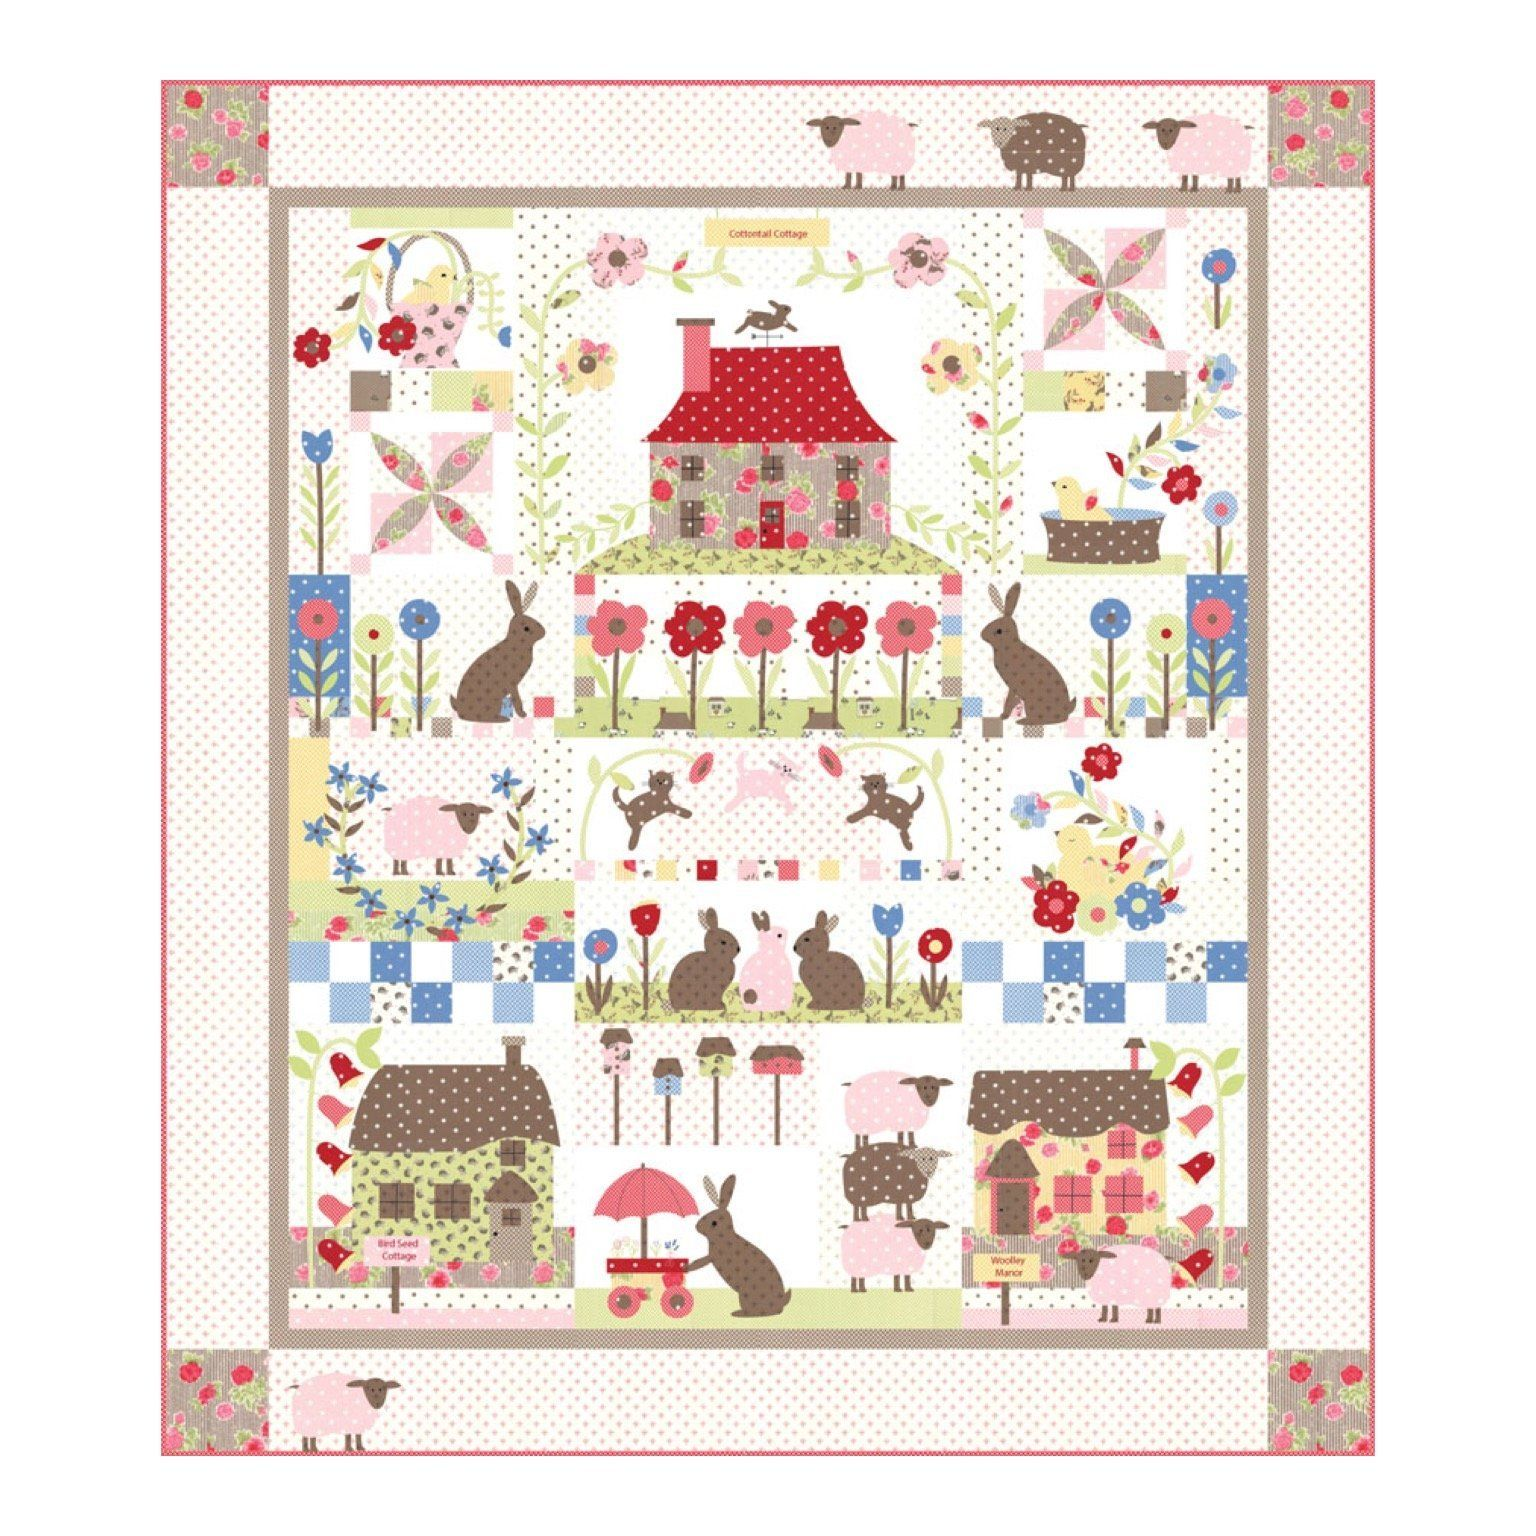 Cottontail Cottage Quilt Kit Bunny Hill Designs Moda Fabrics My Favorite Quilt Store My Favorite Quilt Patterns Quil Cottage Quilt Quilts Bunny Quilt